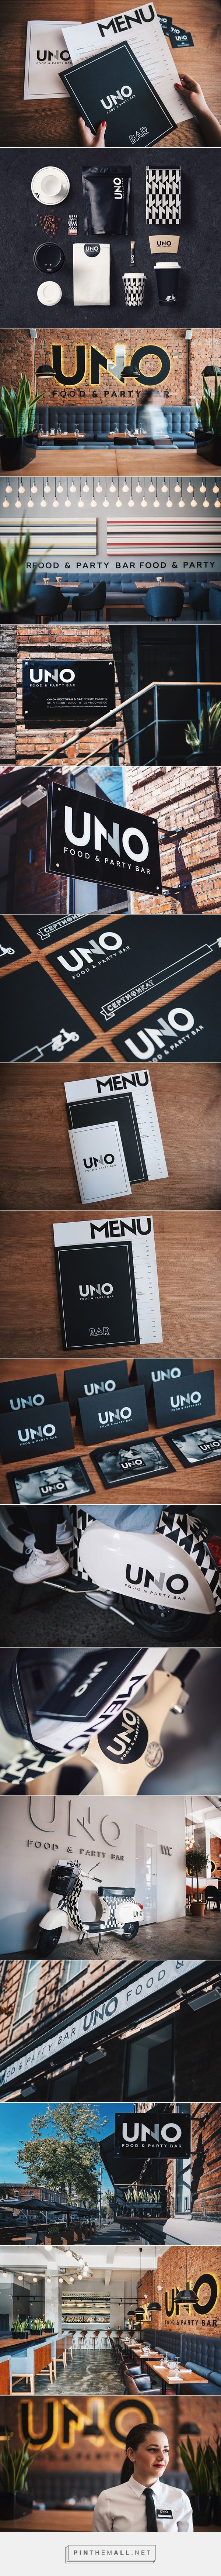 Uno Food and Party Bar on Behance | Fivestar Branding – Design and Branding Agency & Inspiration Gallery